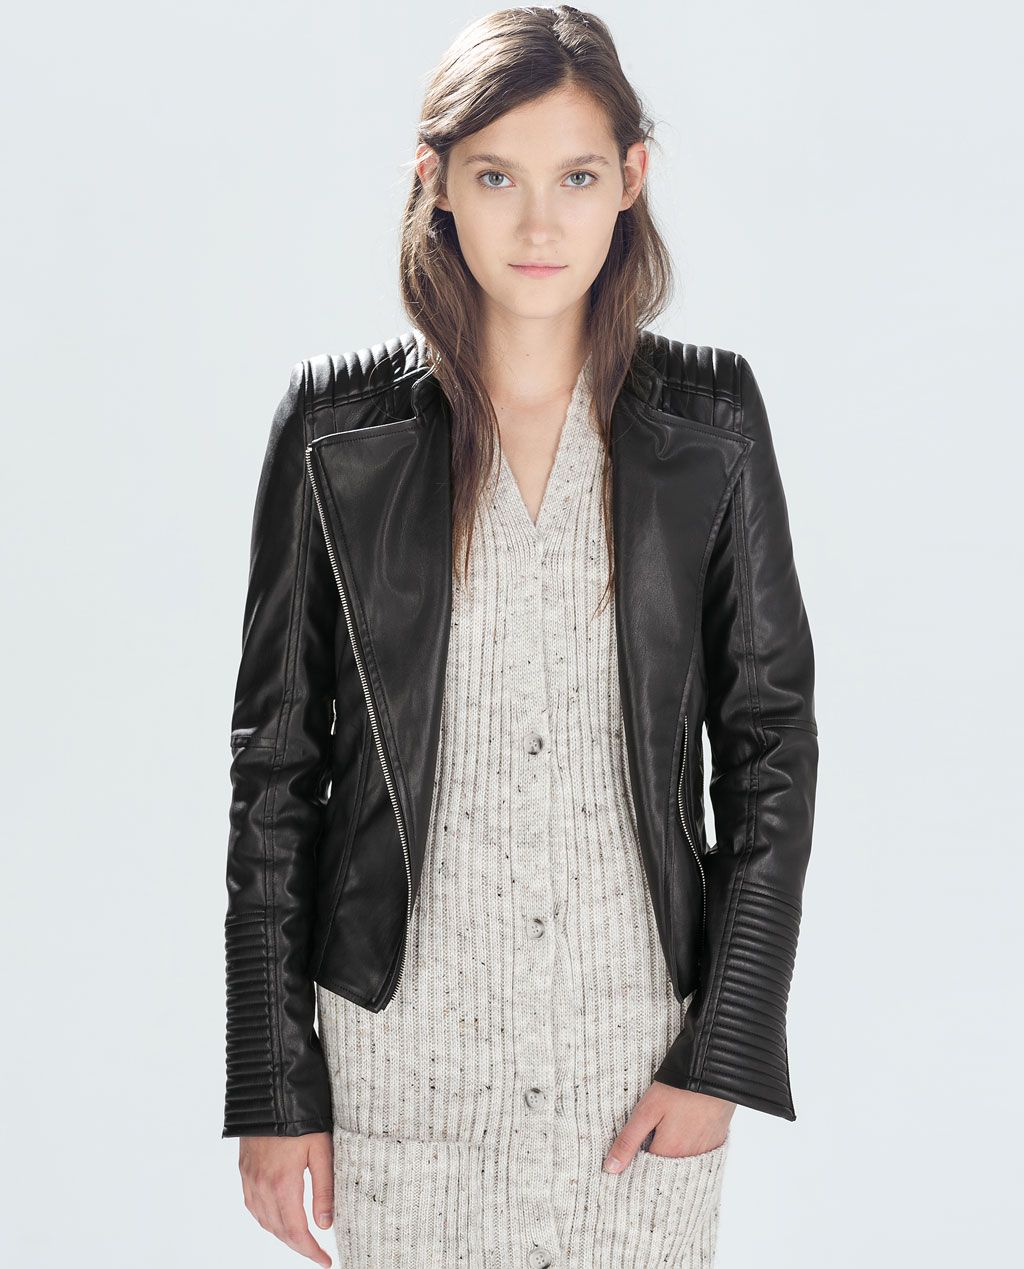 BIKER JACKET from Zara Faux leather jackets, Black faux